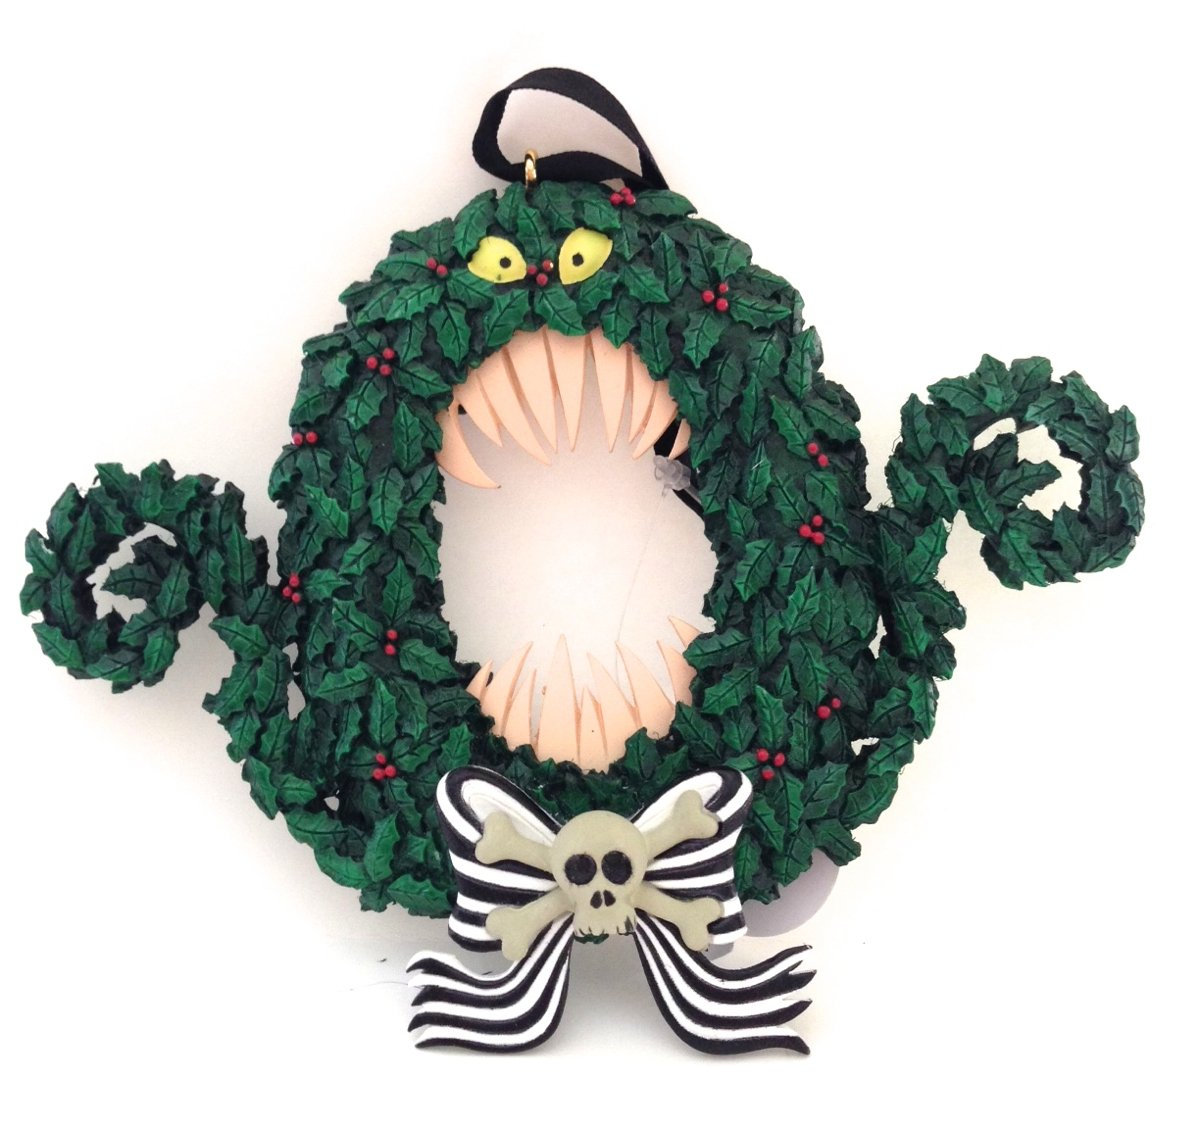 Amazon.com: Disney Park Nightmare Before Christmas Scary Wreath ...